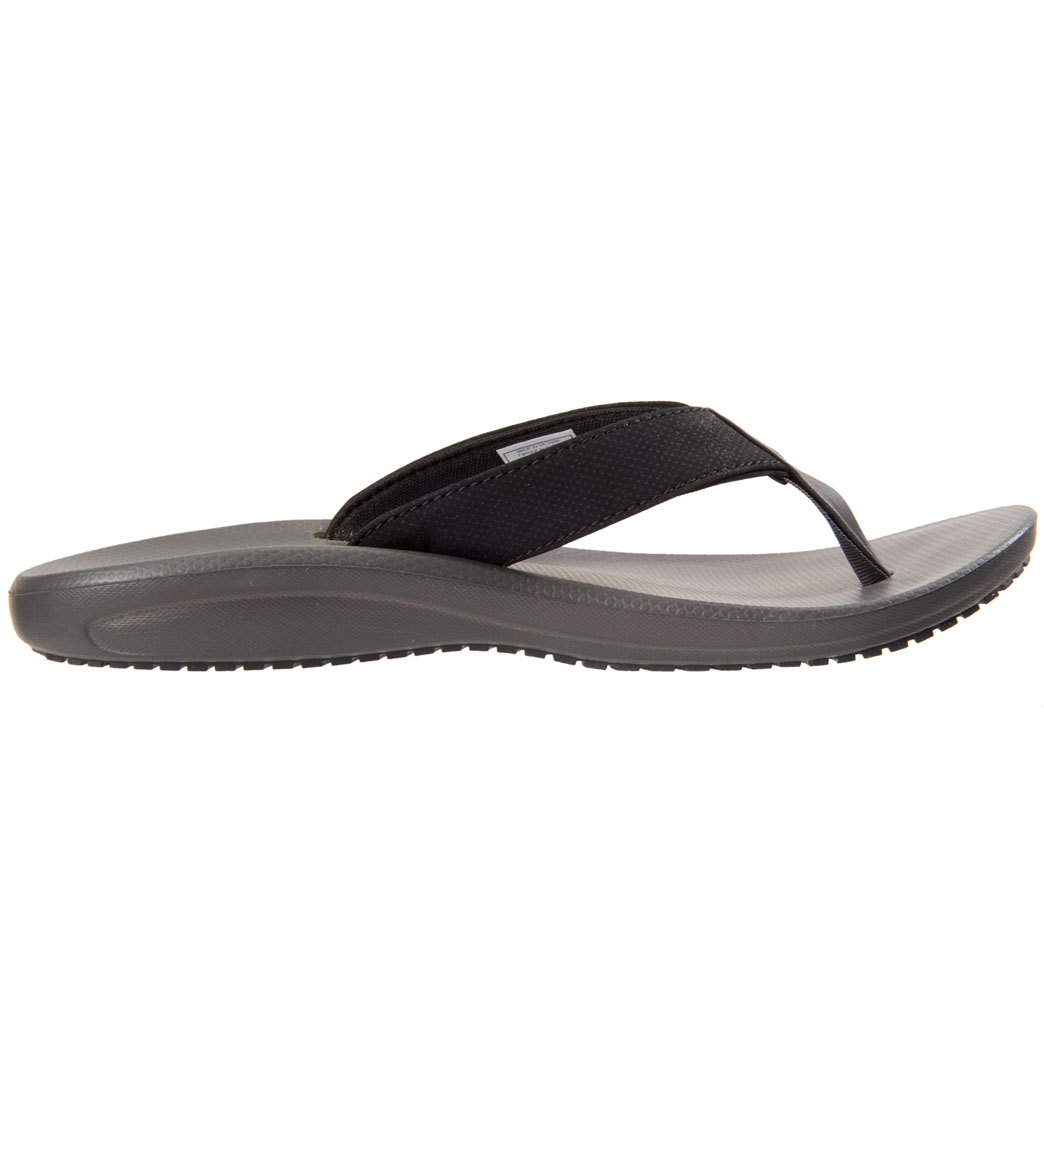 4fd36a24788 Columbia Women s Barraca Flip Flop at SwimOutlet.com - Free Shipping